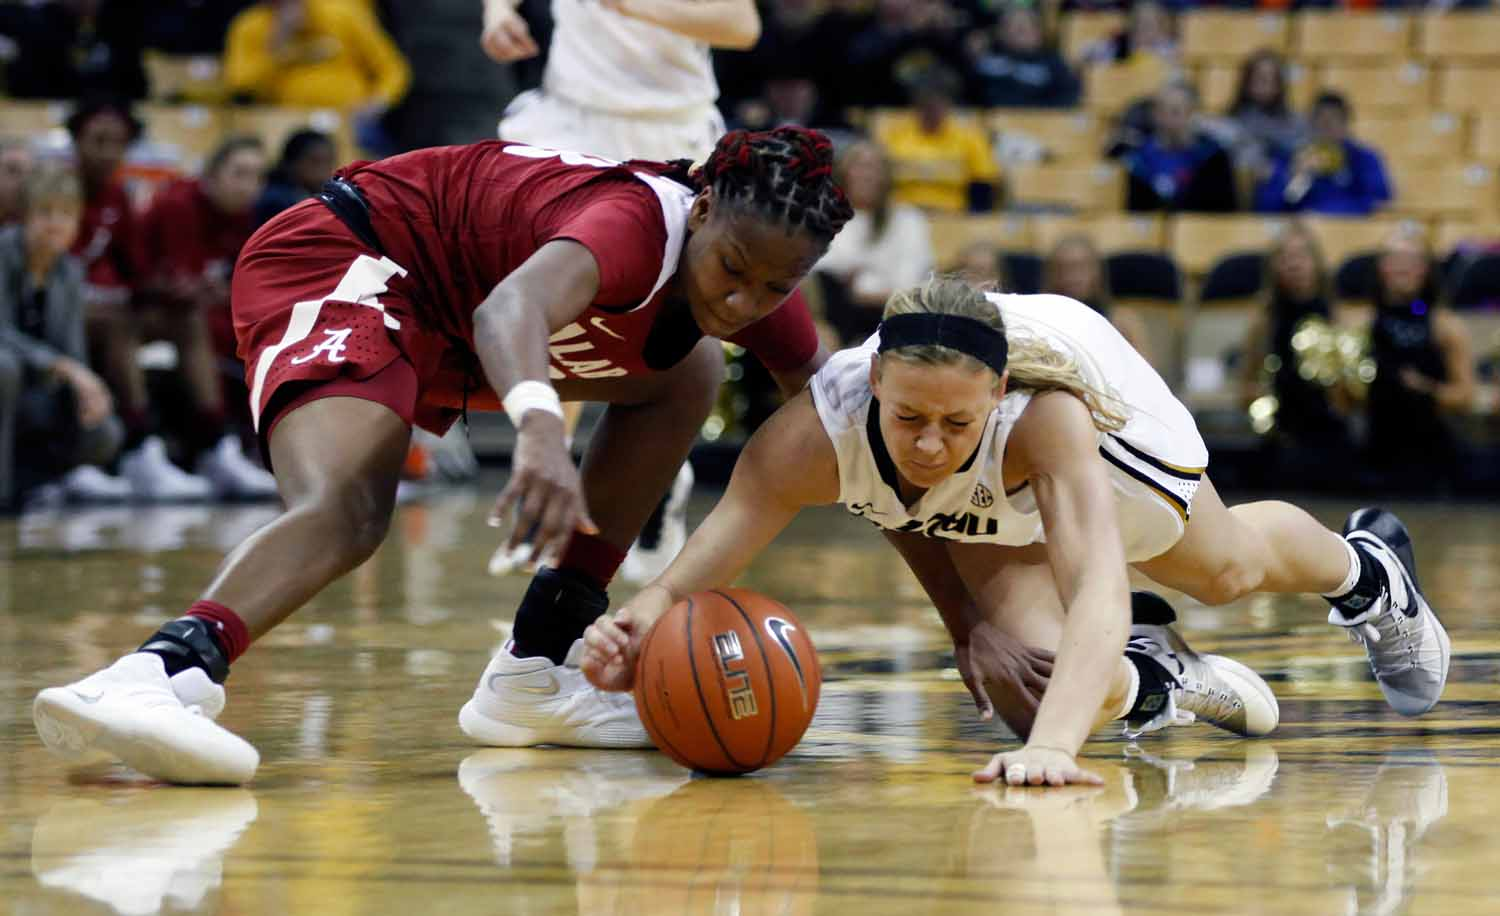 Sophie Cunningham (3) lunges for the ball before Alabama's freshman guard Shaquera Wade (23) can take control of it during the second half of the game Thursday evening, Feb. 11, 2016 at Mizzou Arena.